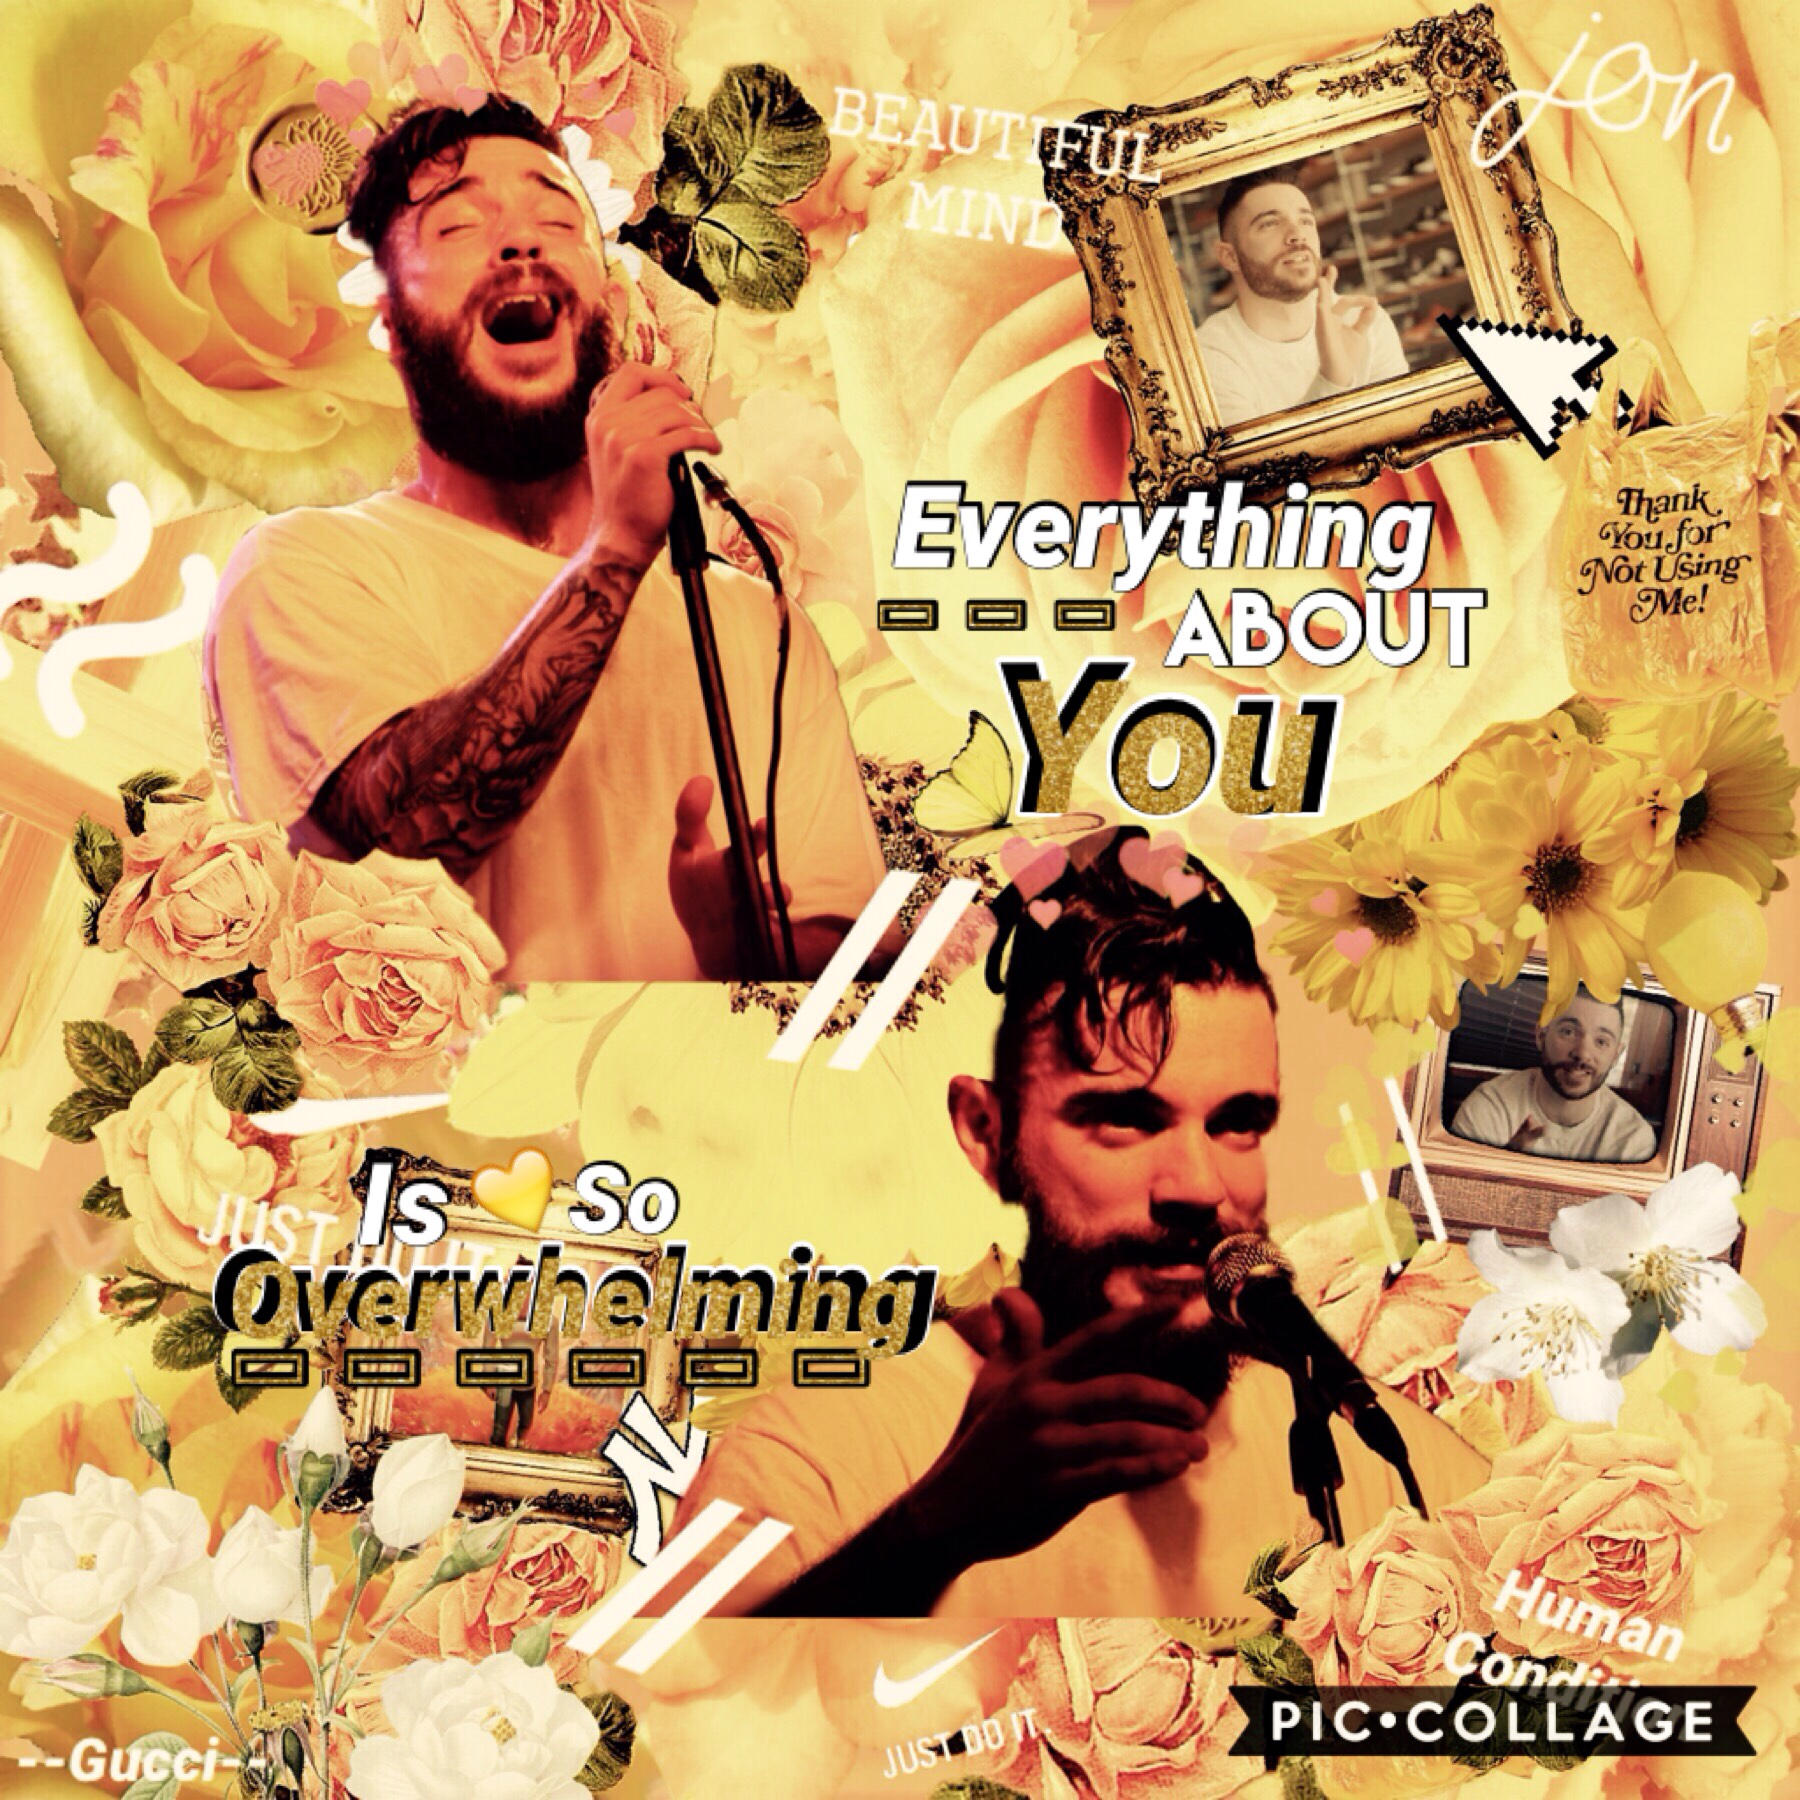 Tap Randomly found this while looking through my edits. I remember taking hours to do this with only PC. I absolutely love Jon Bellion and I wonder why I never posted this. {Have a great day y'all}